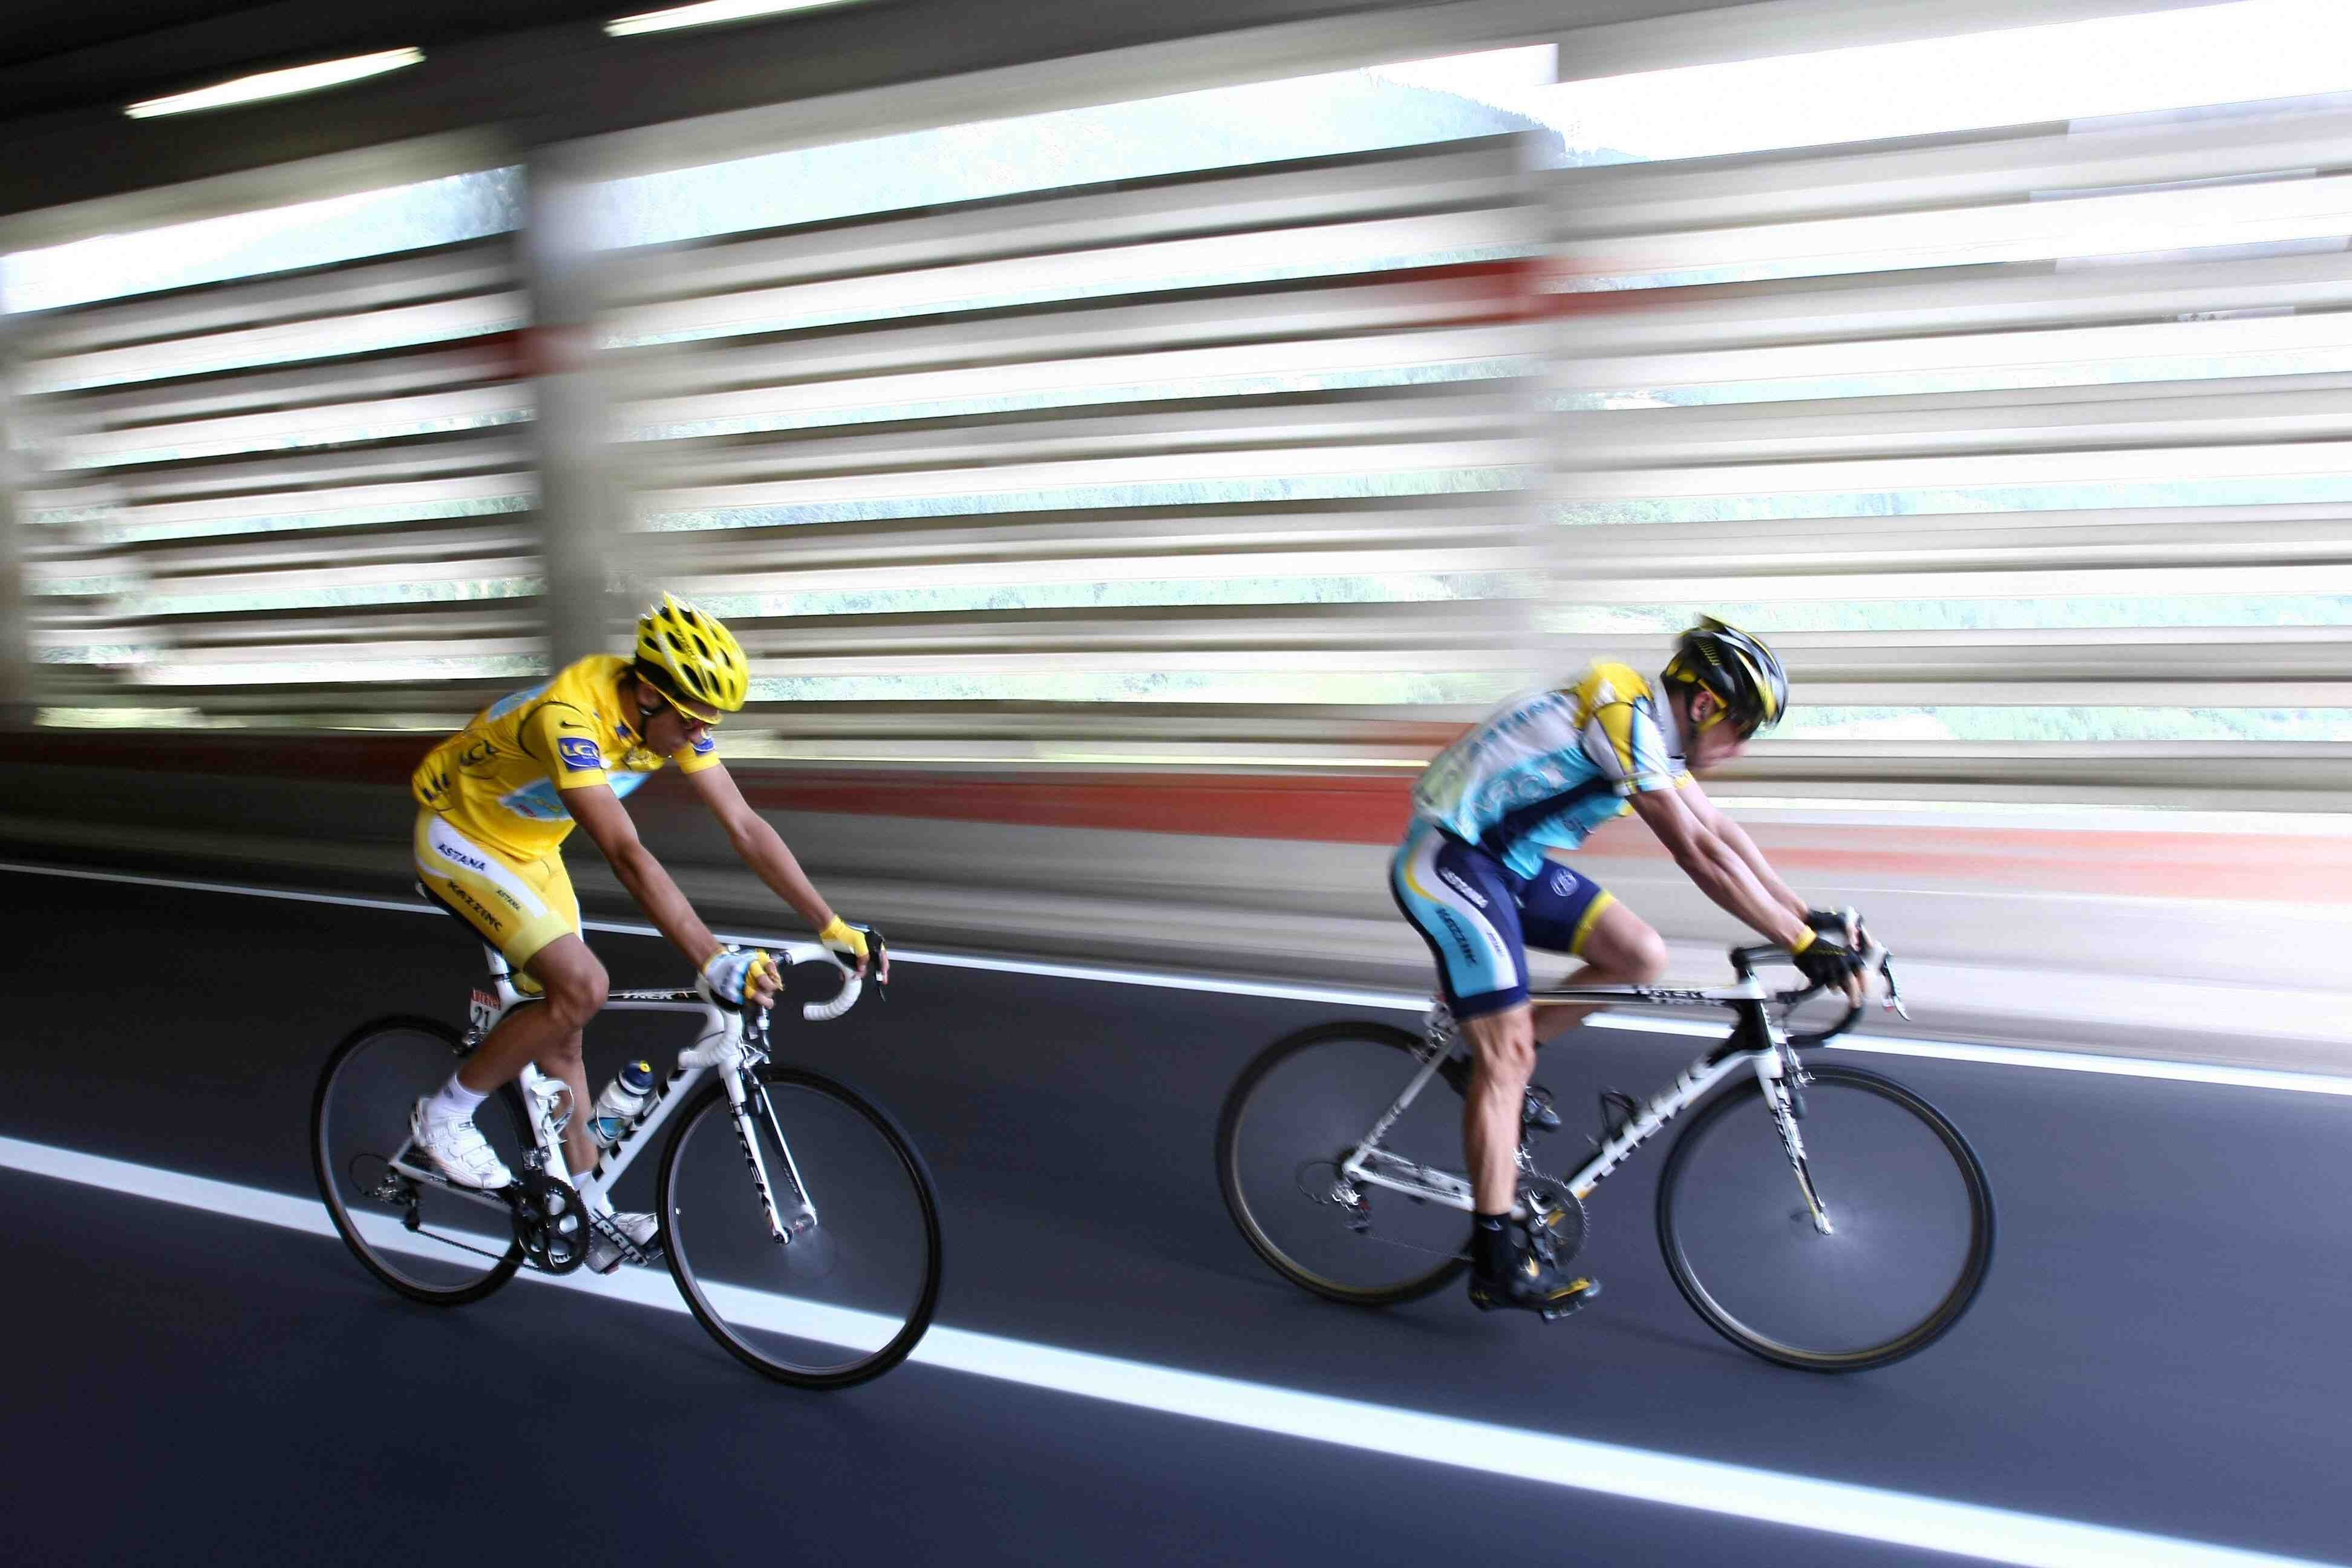 Current Astana teammates Alberto Contador and Lance Armstrong during stage 16 of the 2009 Tour de France.